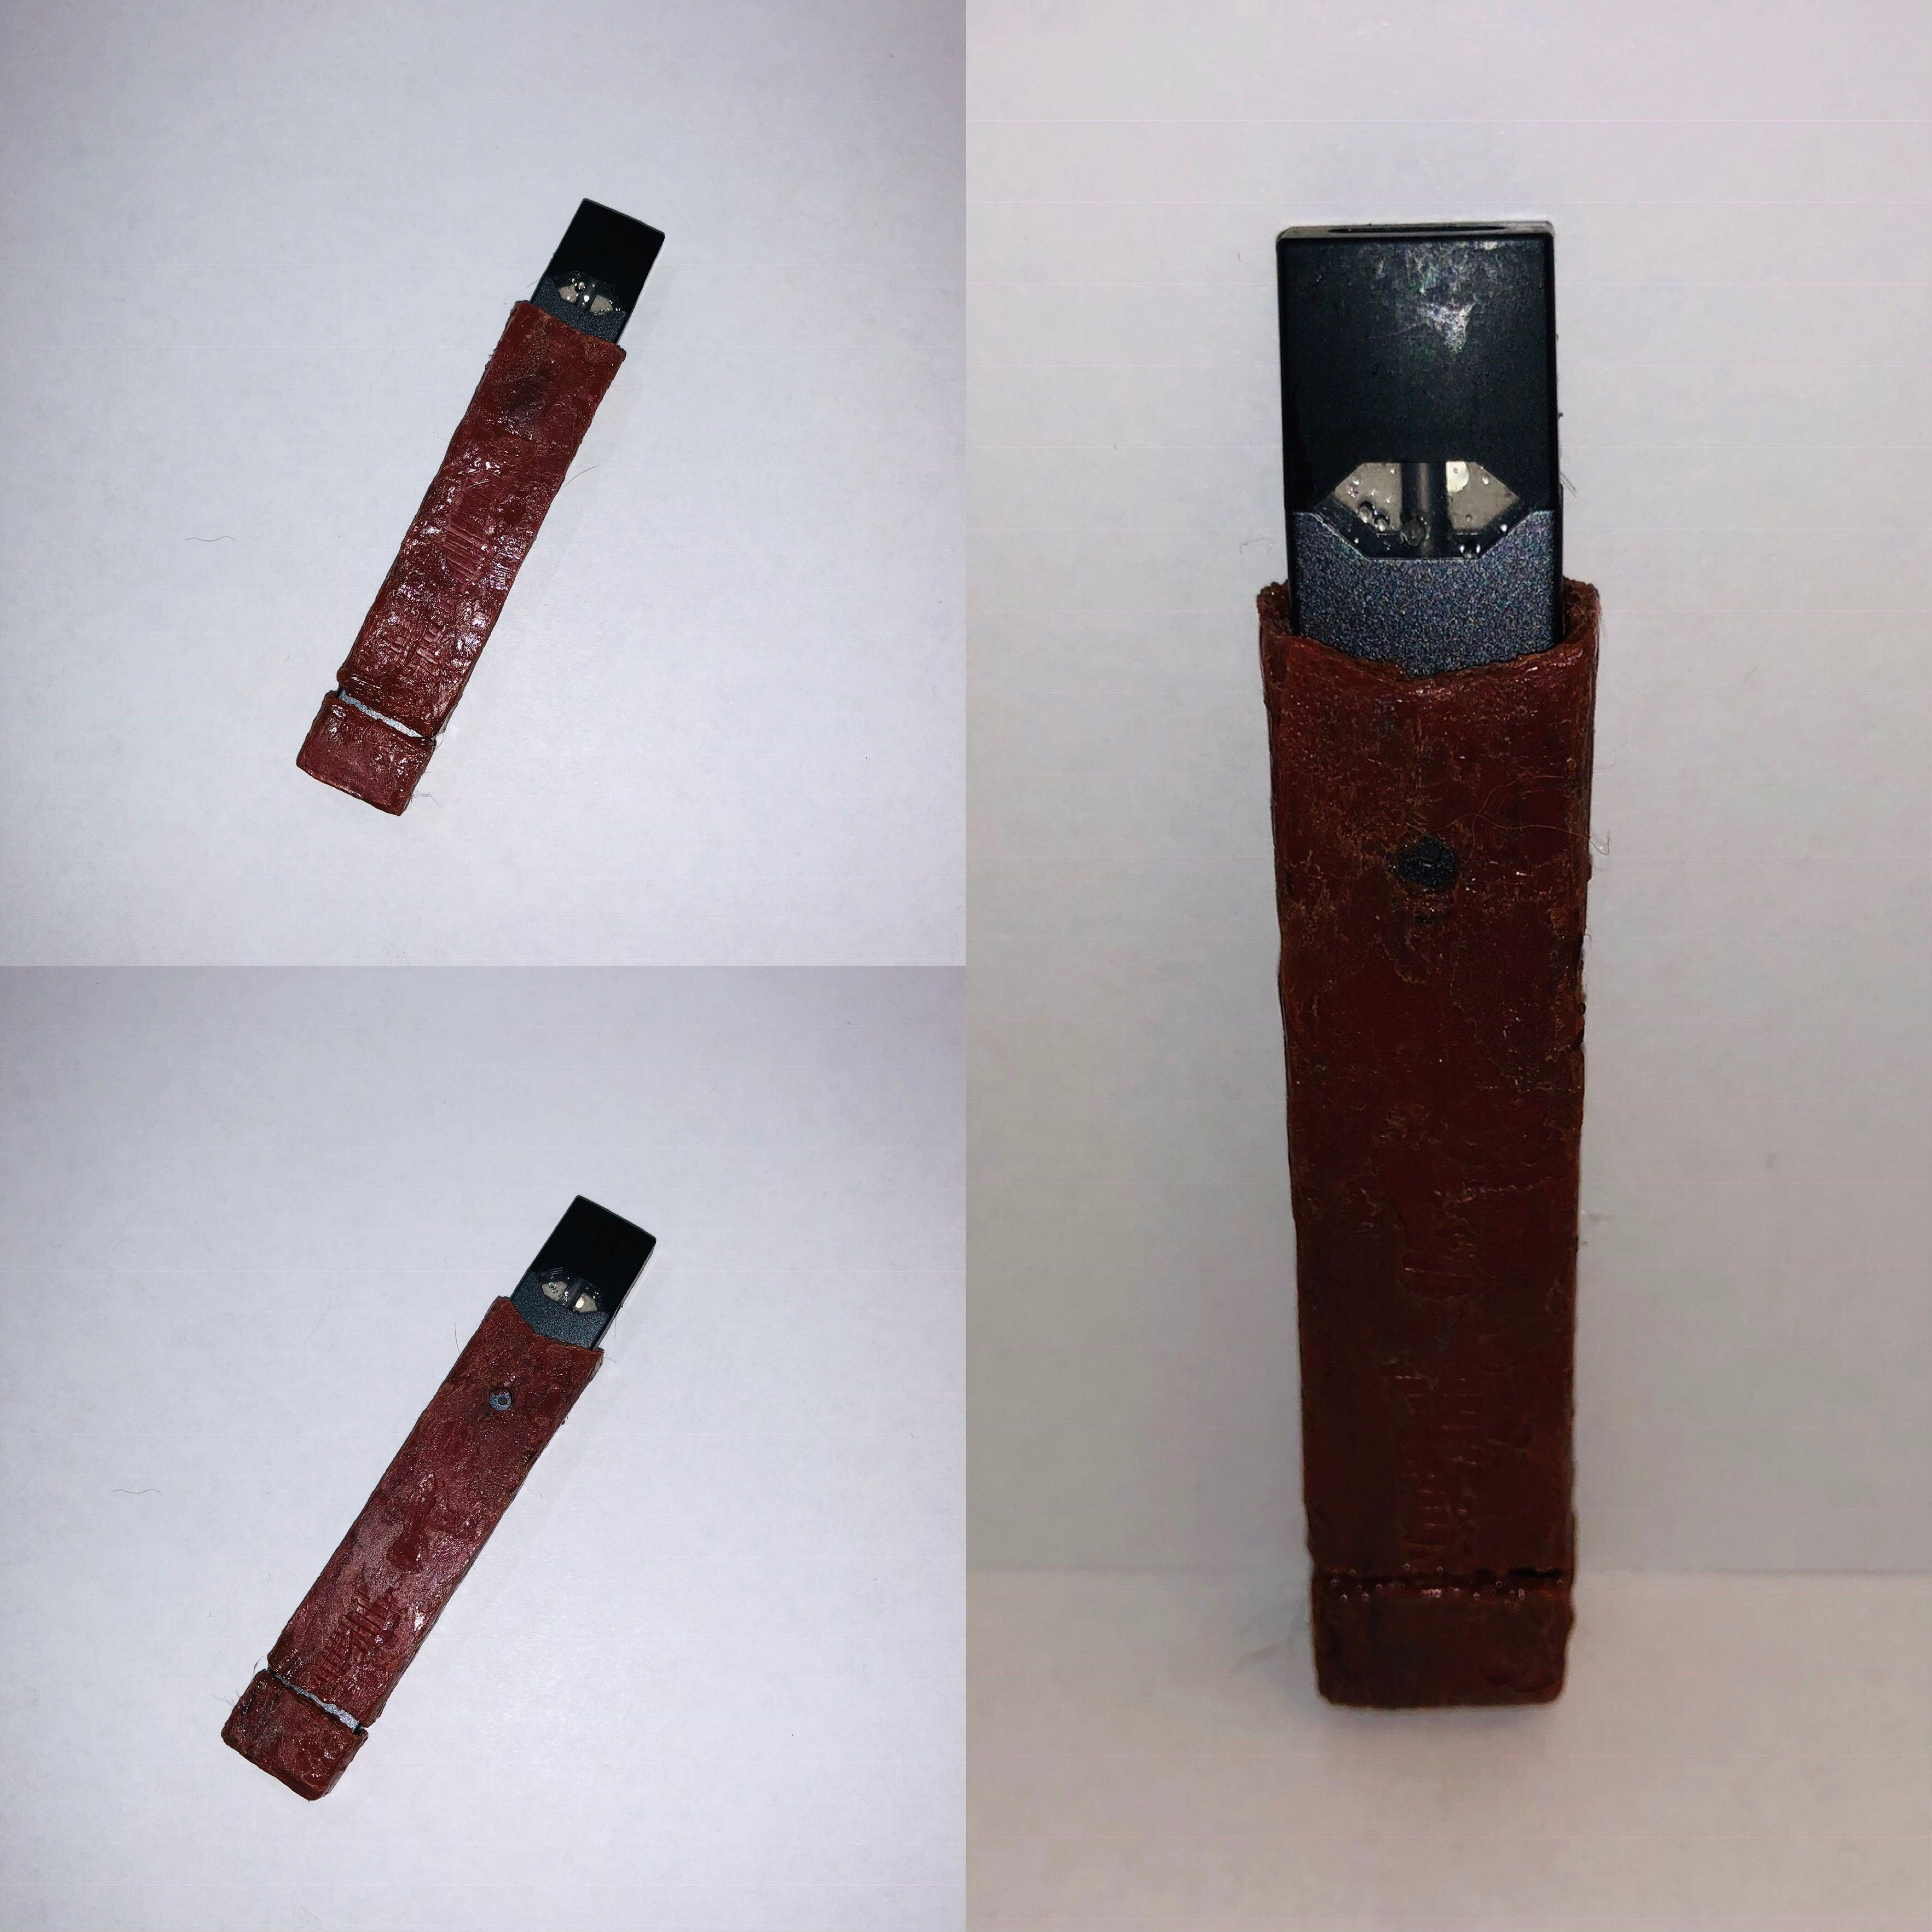 3D Pen Red handmade hardshell Case for Juul with removable